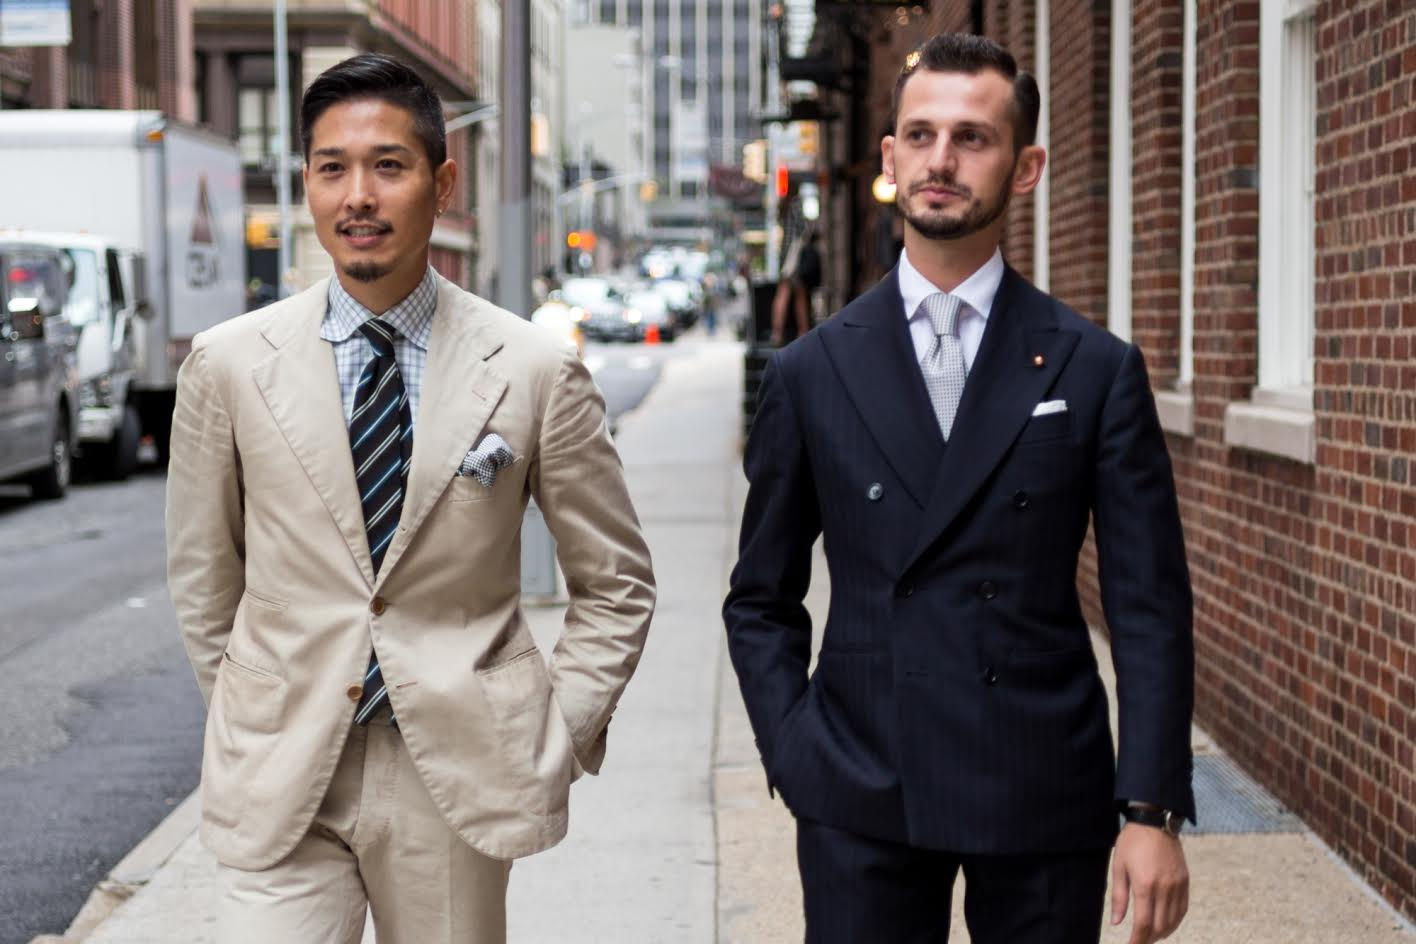 Heramo.com - Kiểu Suits